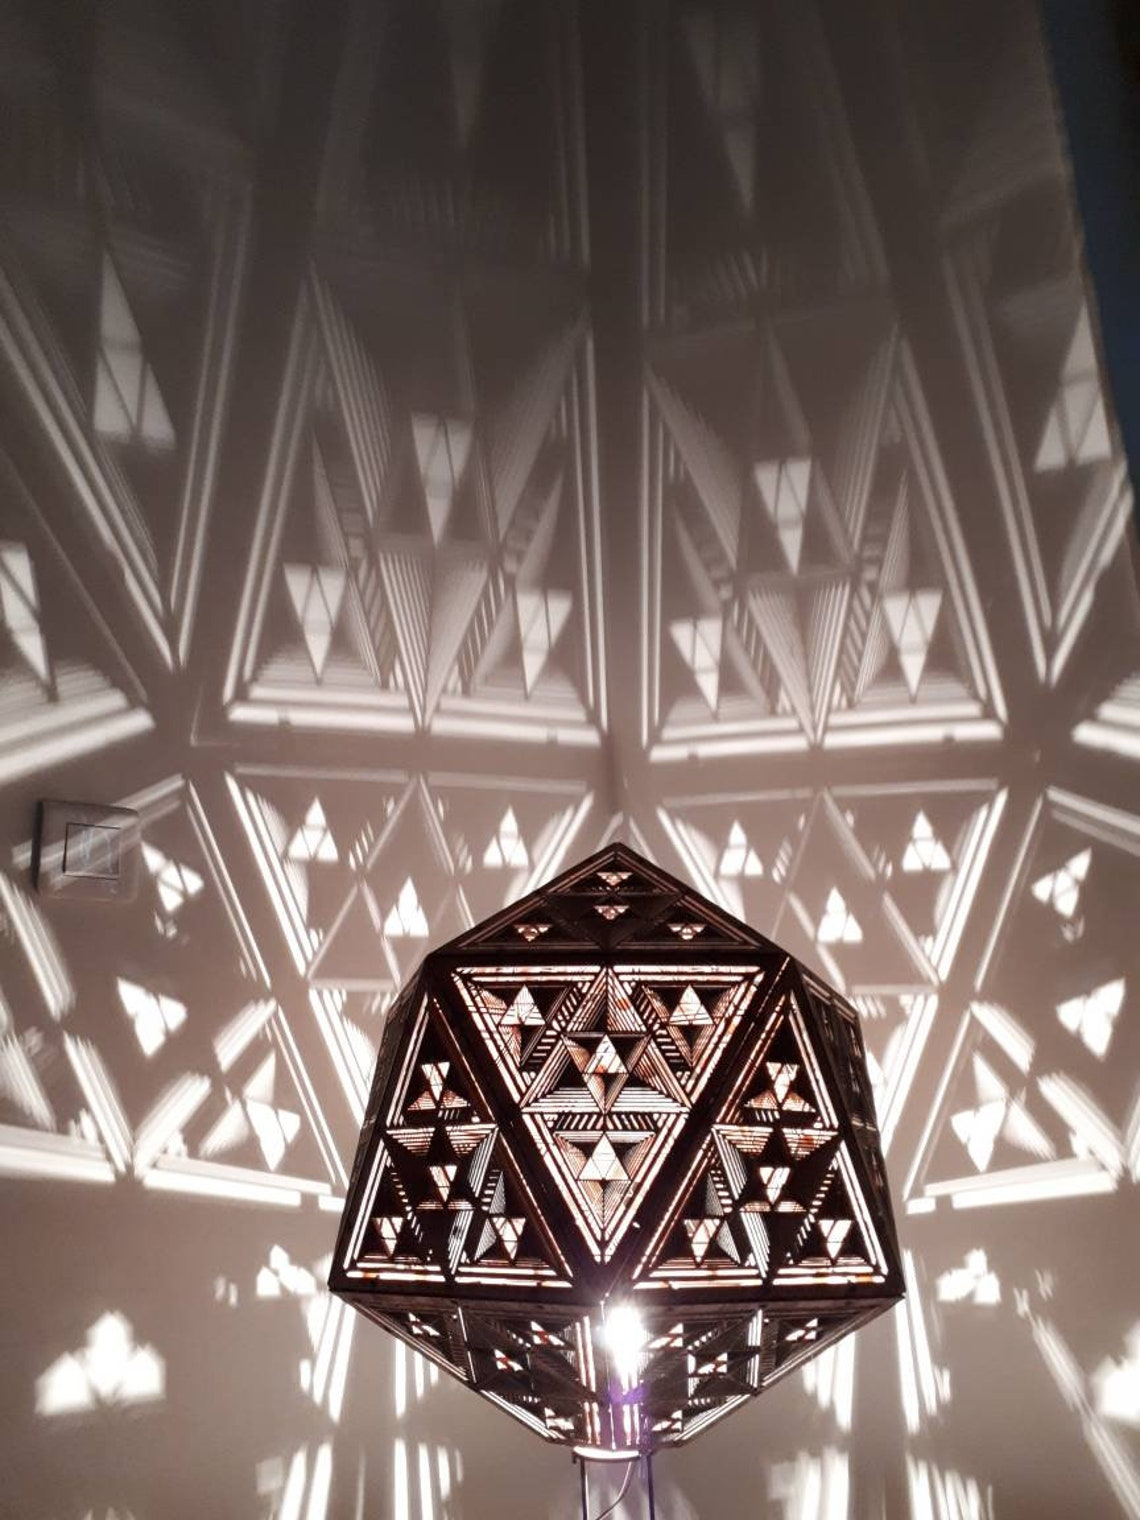 Wooden suspension lamp, platonic shape icosahedron with fractal optical illusion drawing - laser cut.